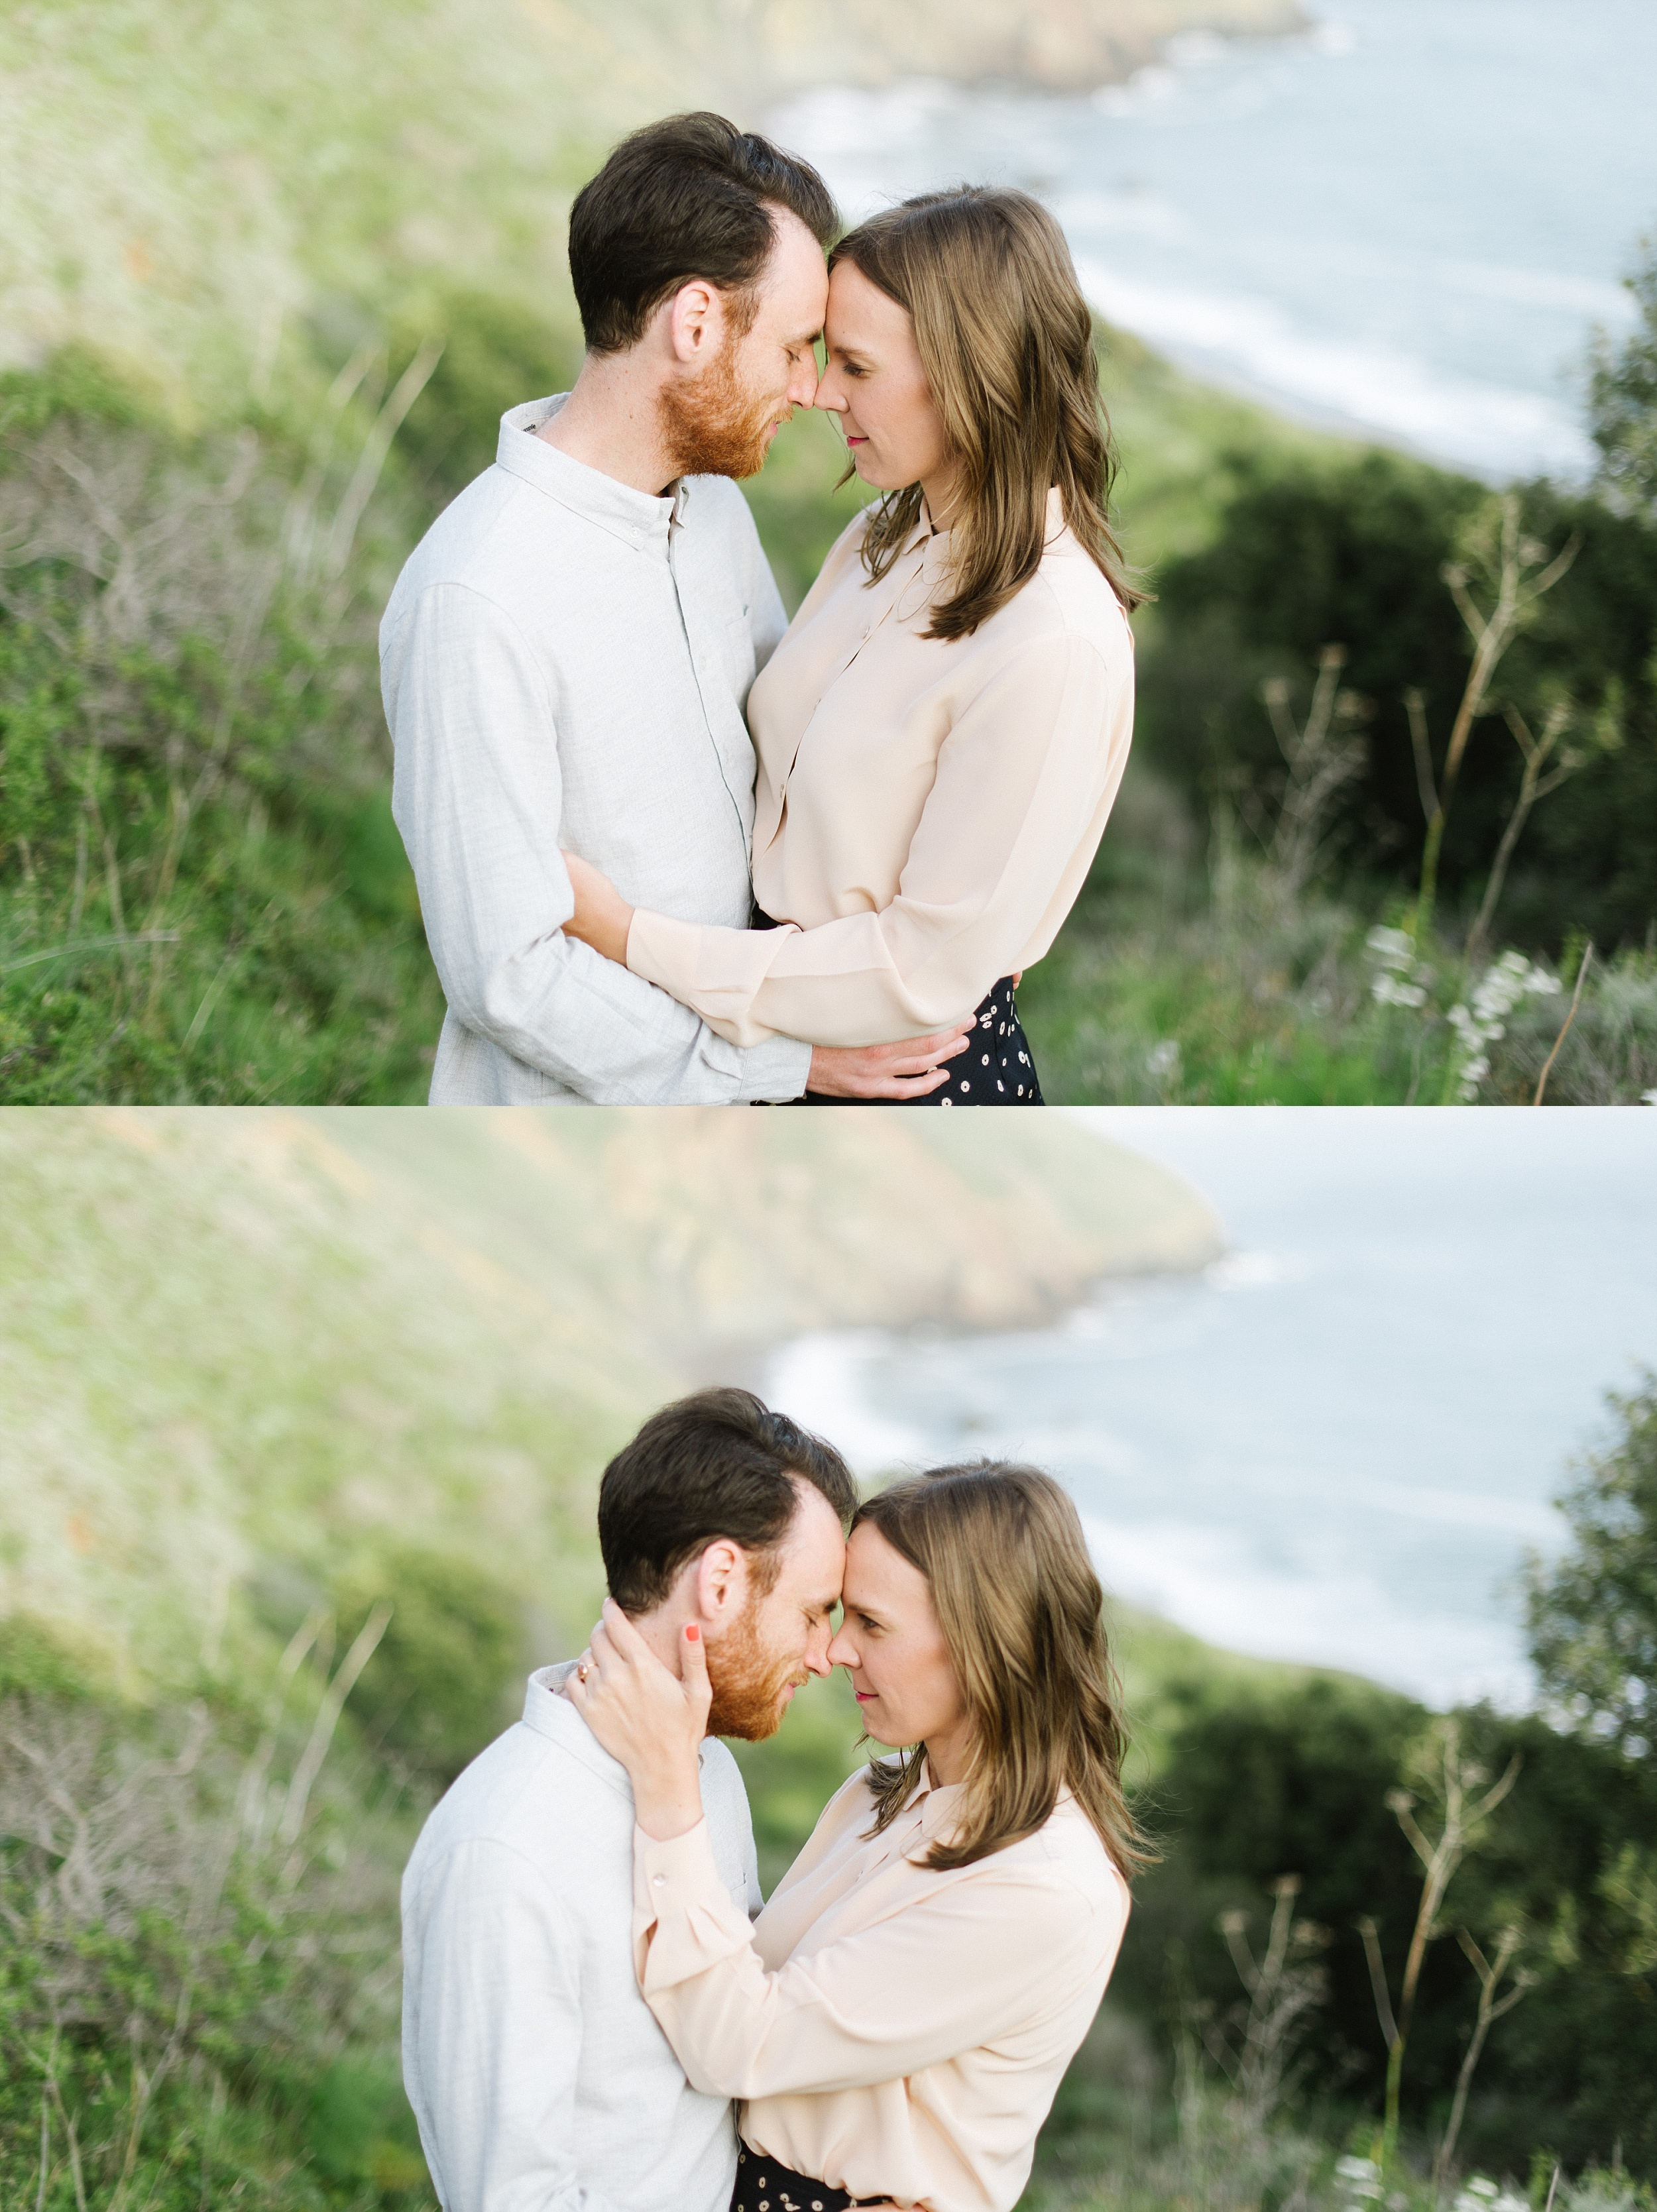 black_sands_beach_engagement_chelsea_dier_photography_0017.jpg